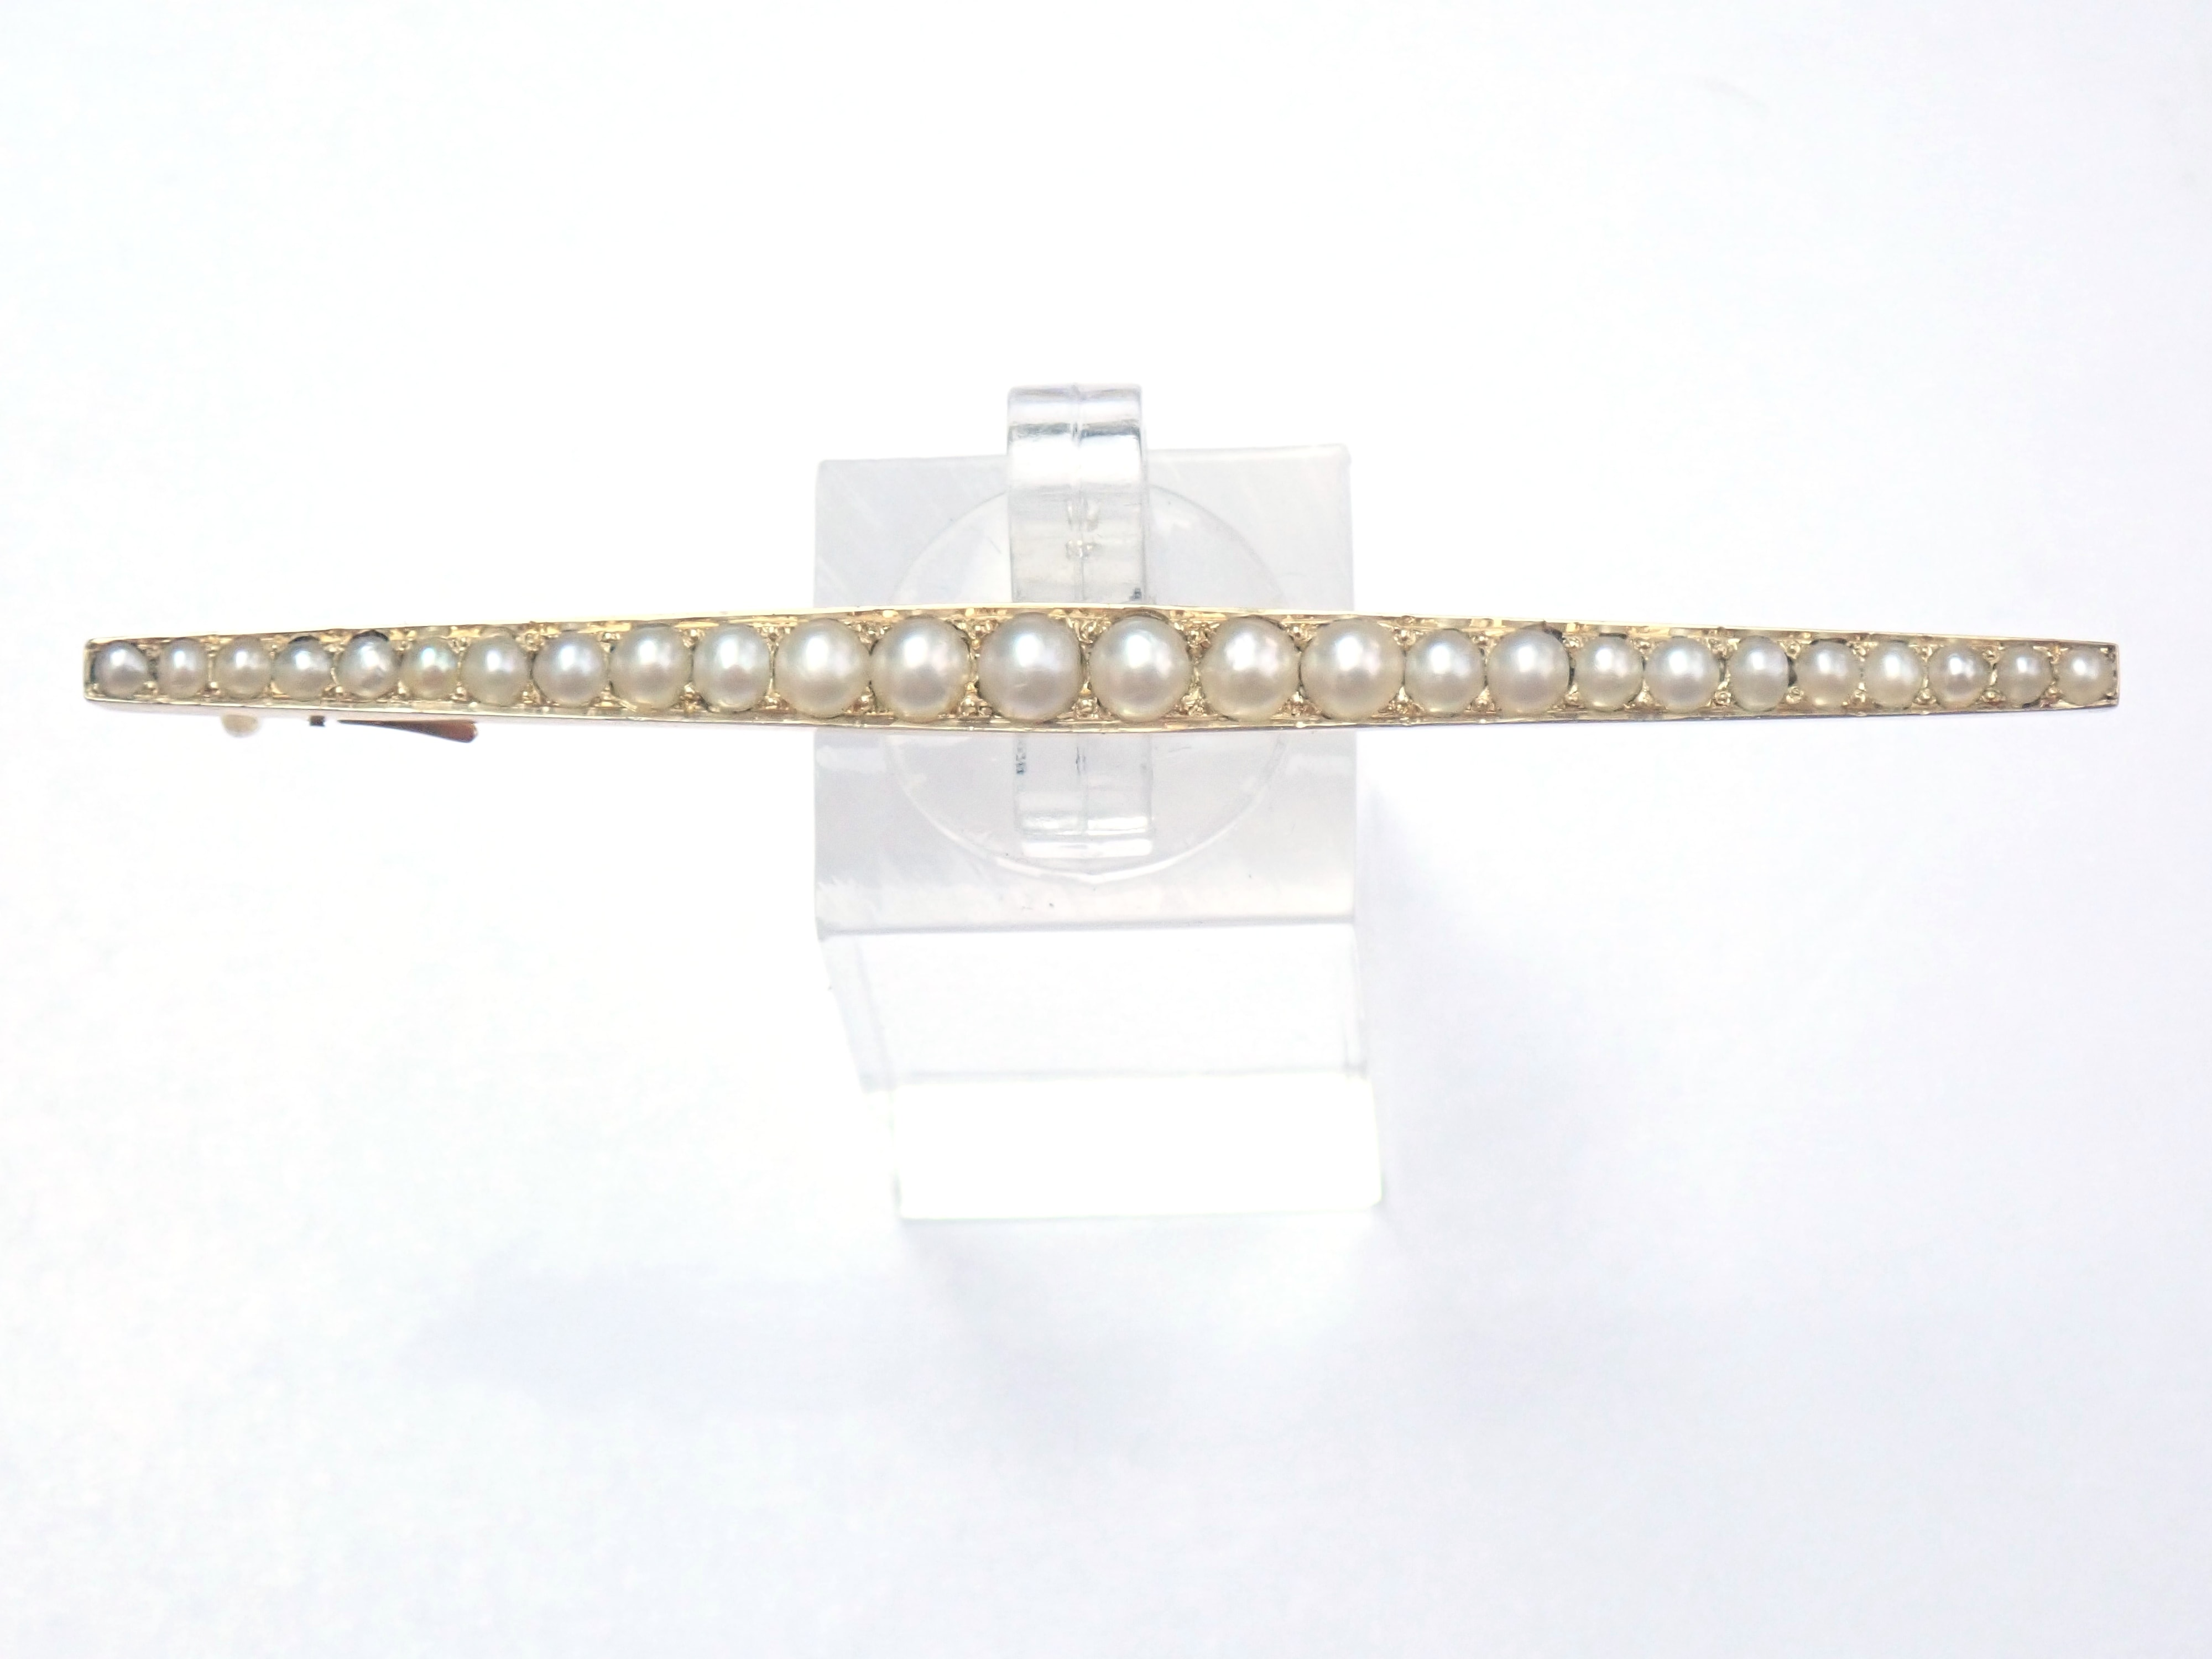 AZZ00784 - Antique!! 9ct Yellow Gold Graduated Pearl Pin Brooch 4.7g #80